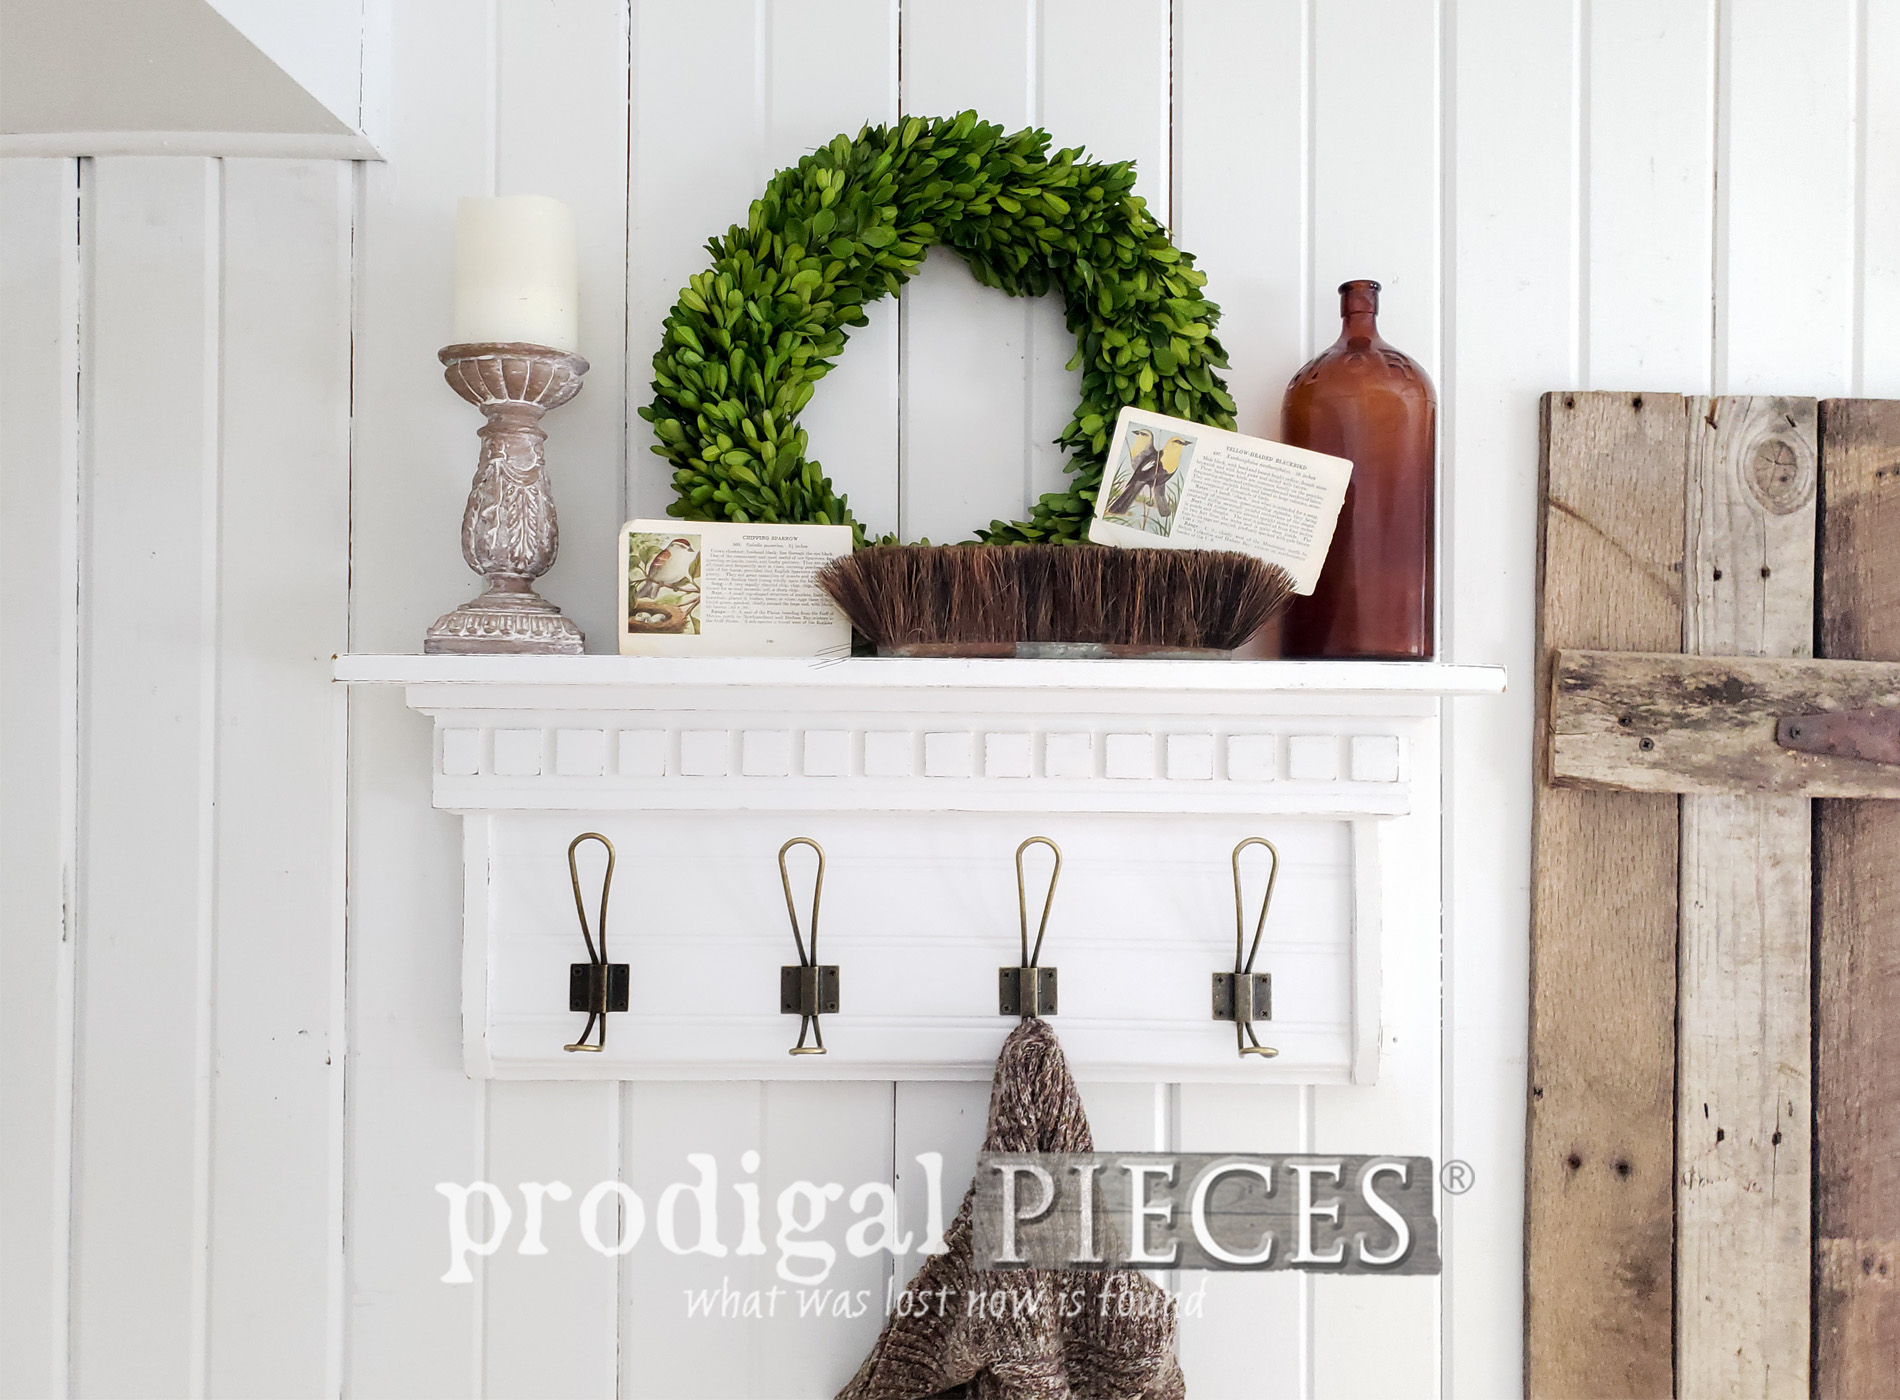 Featured Upcycled Farmhouse Coat Rack from Thrift Store Shelf | Video tutorial & giveaway by Larissa of Prodigal Pieces | prodigalpieces.com #prodigalpieces #diy #handmade #farmhouse #tutorial #videos #giveaway #home #homedecor #homedecorideas